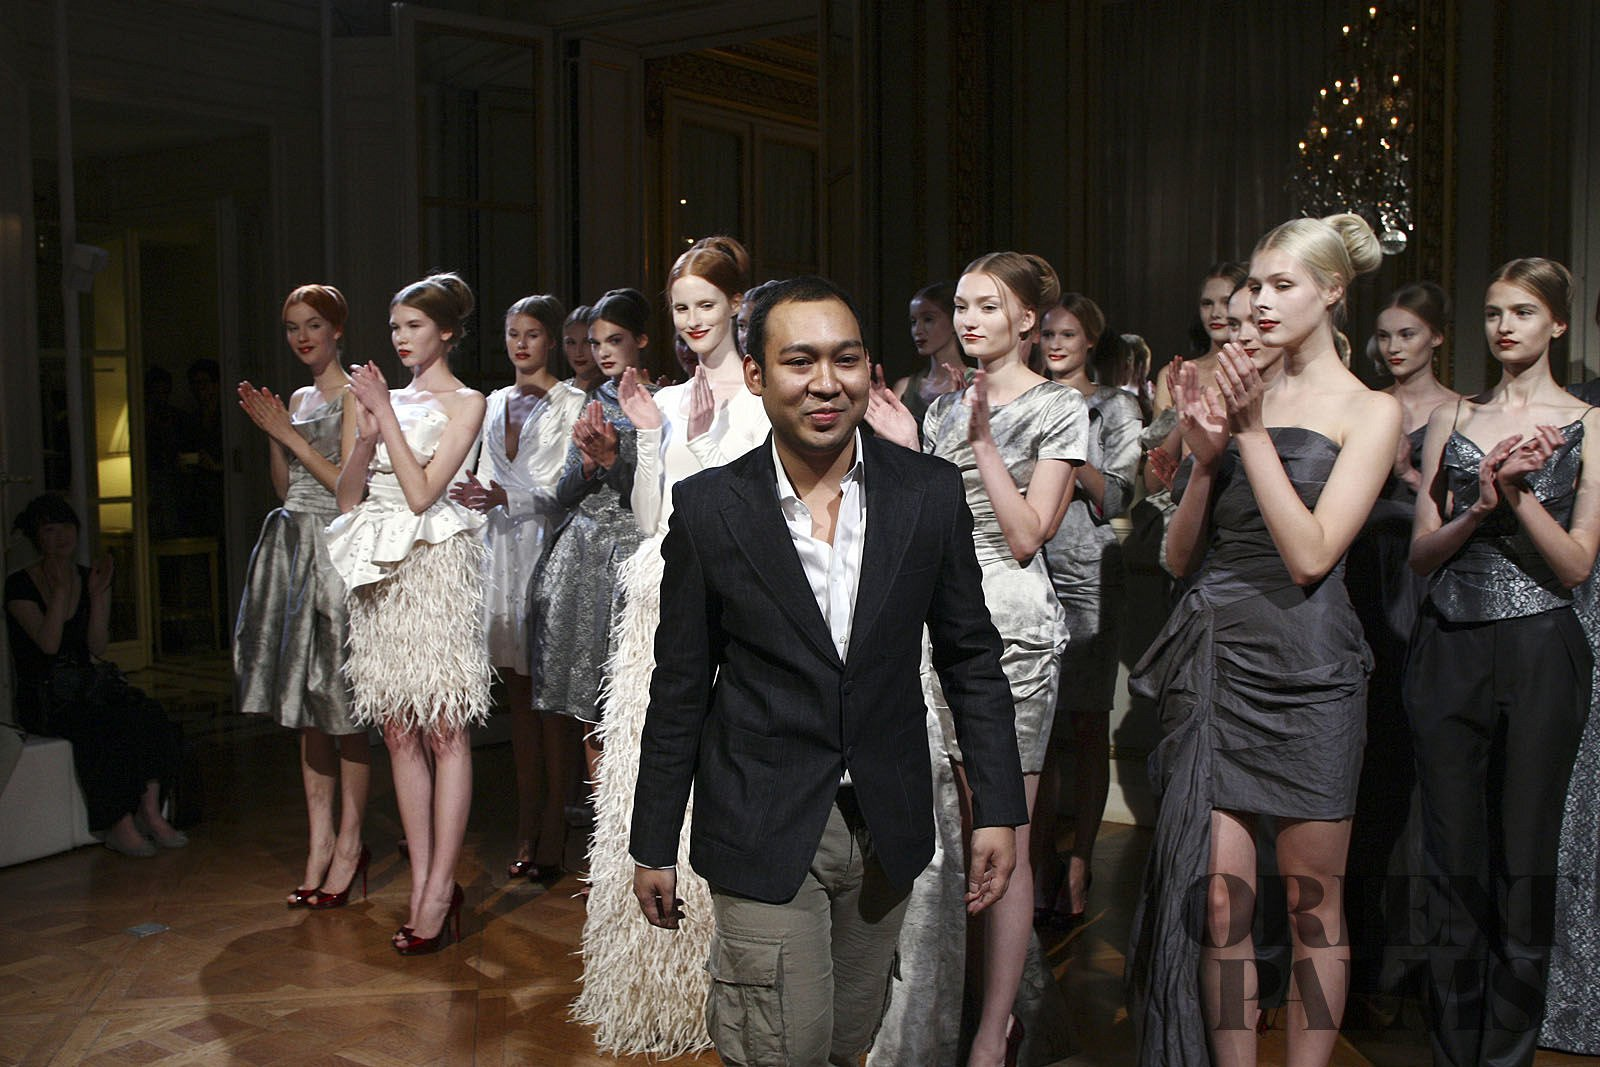 Didit Hediprasetyo Herfst/Winter 2011-2012 - Haute couture - 1